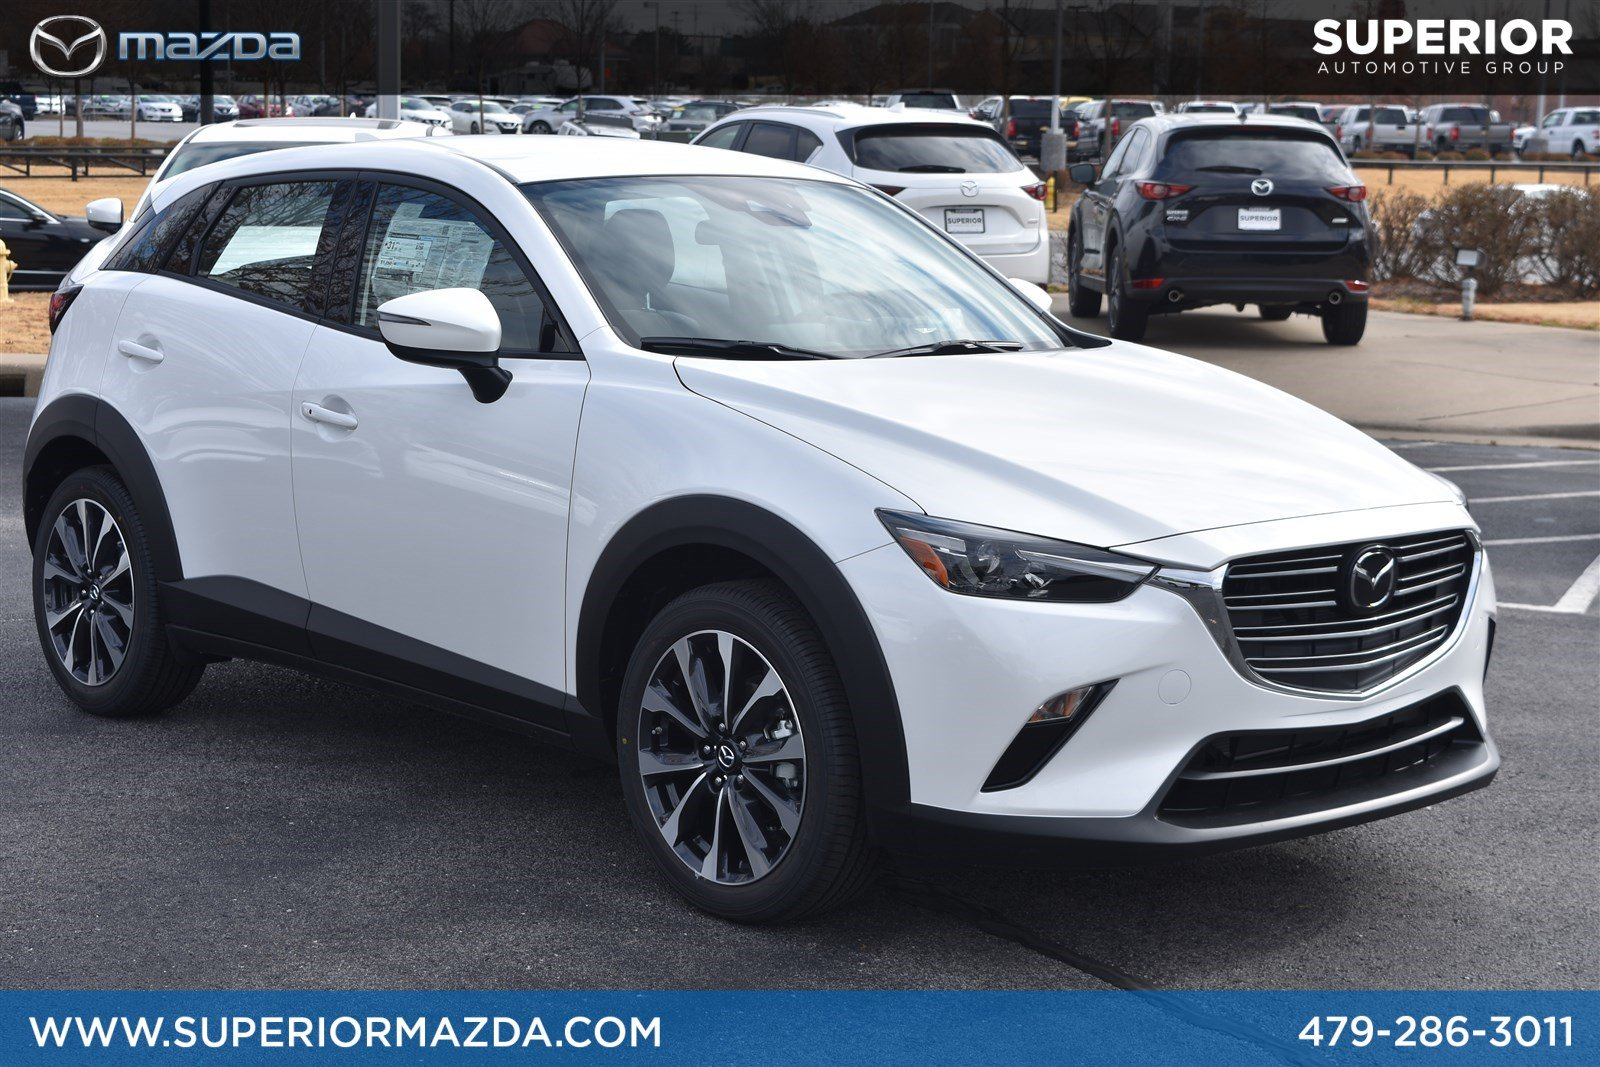 21 All New 2019 Mazda Cx 3 Concept